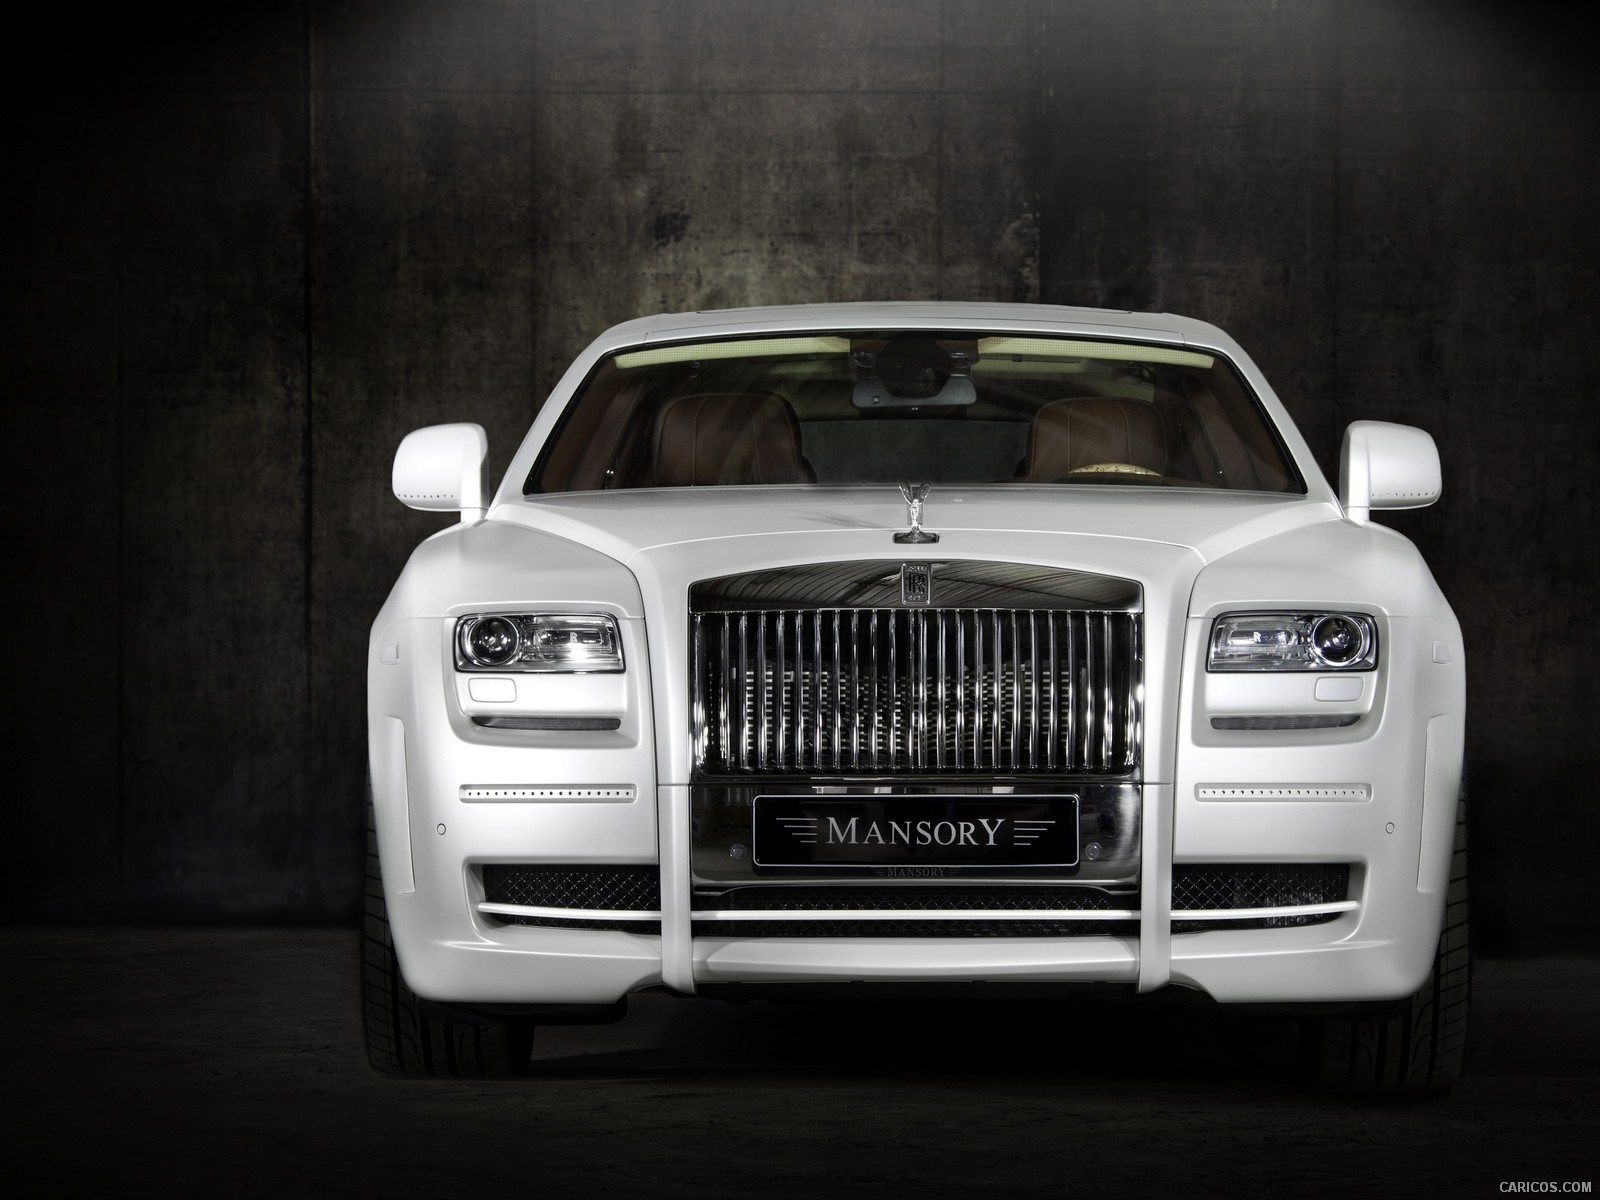 c mansory rollsroyce ghost white front wallpaper | whips | pinterest